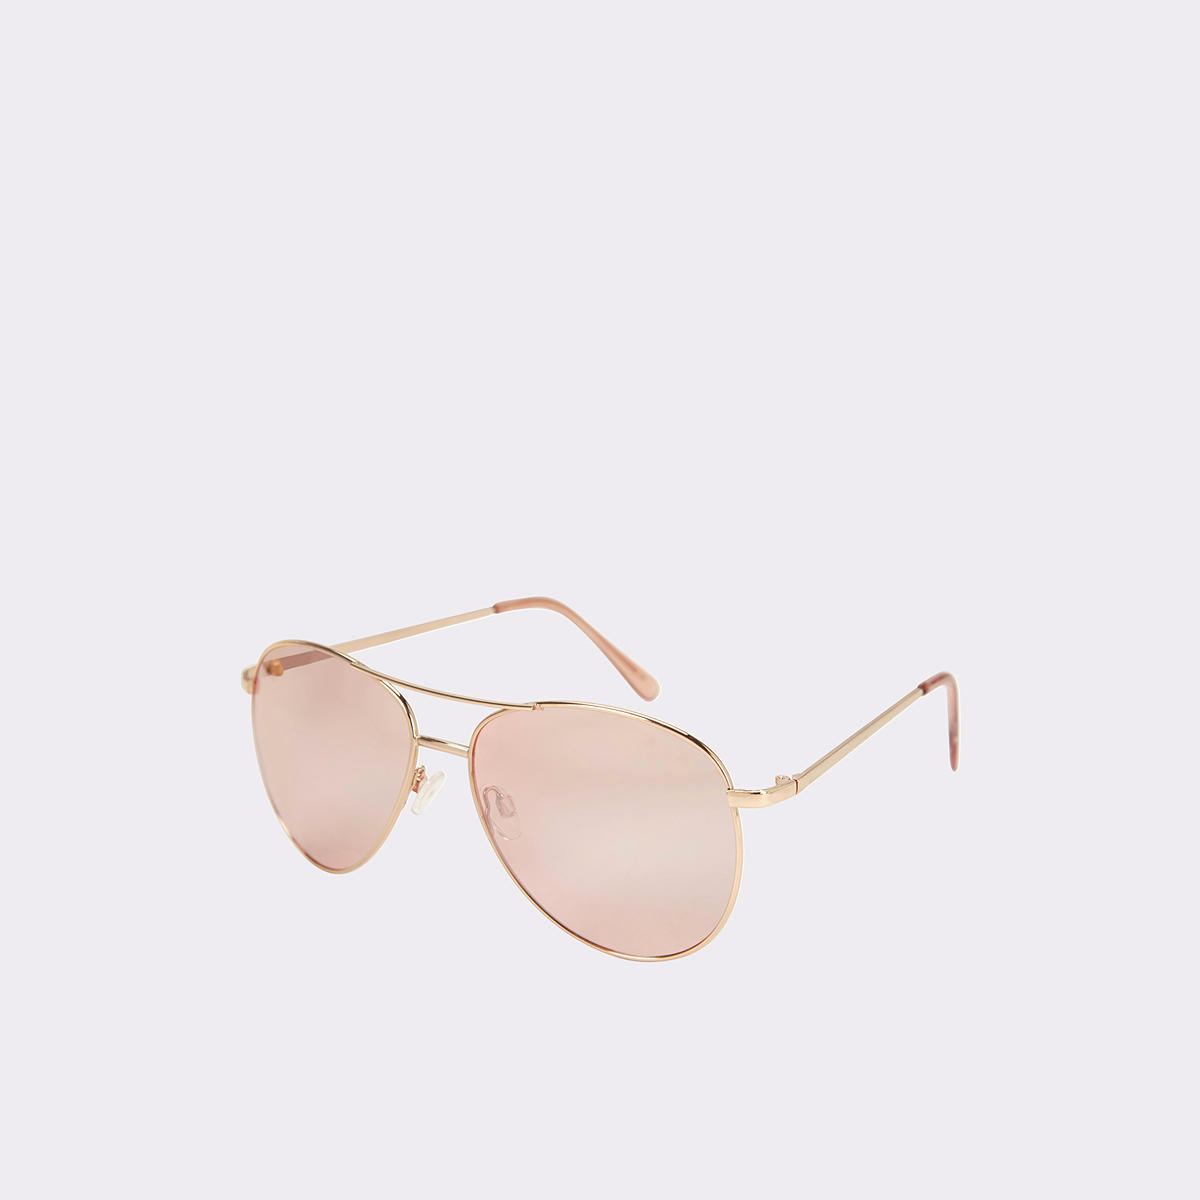 Goriano Pink Misc. Women's Aviator | ALDO US at Aldo Shoes in Victor, NY | Tuggl